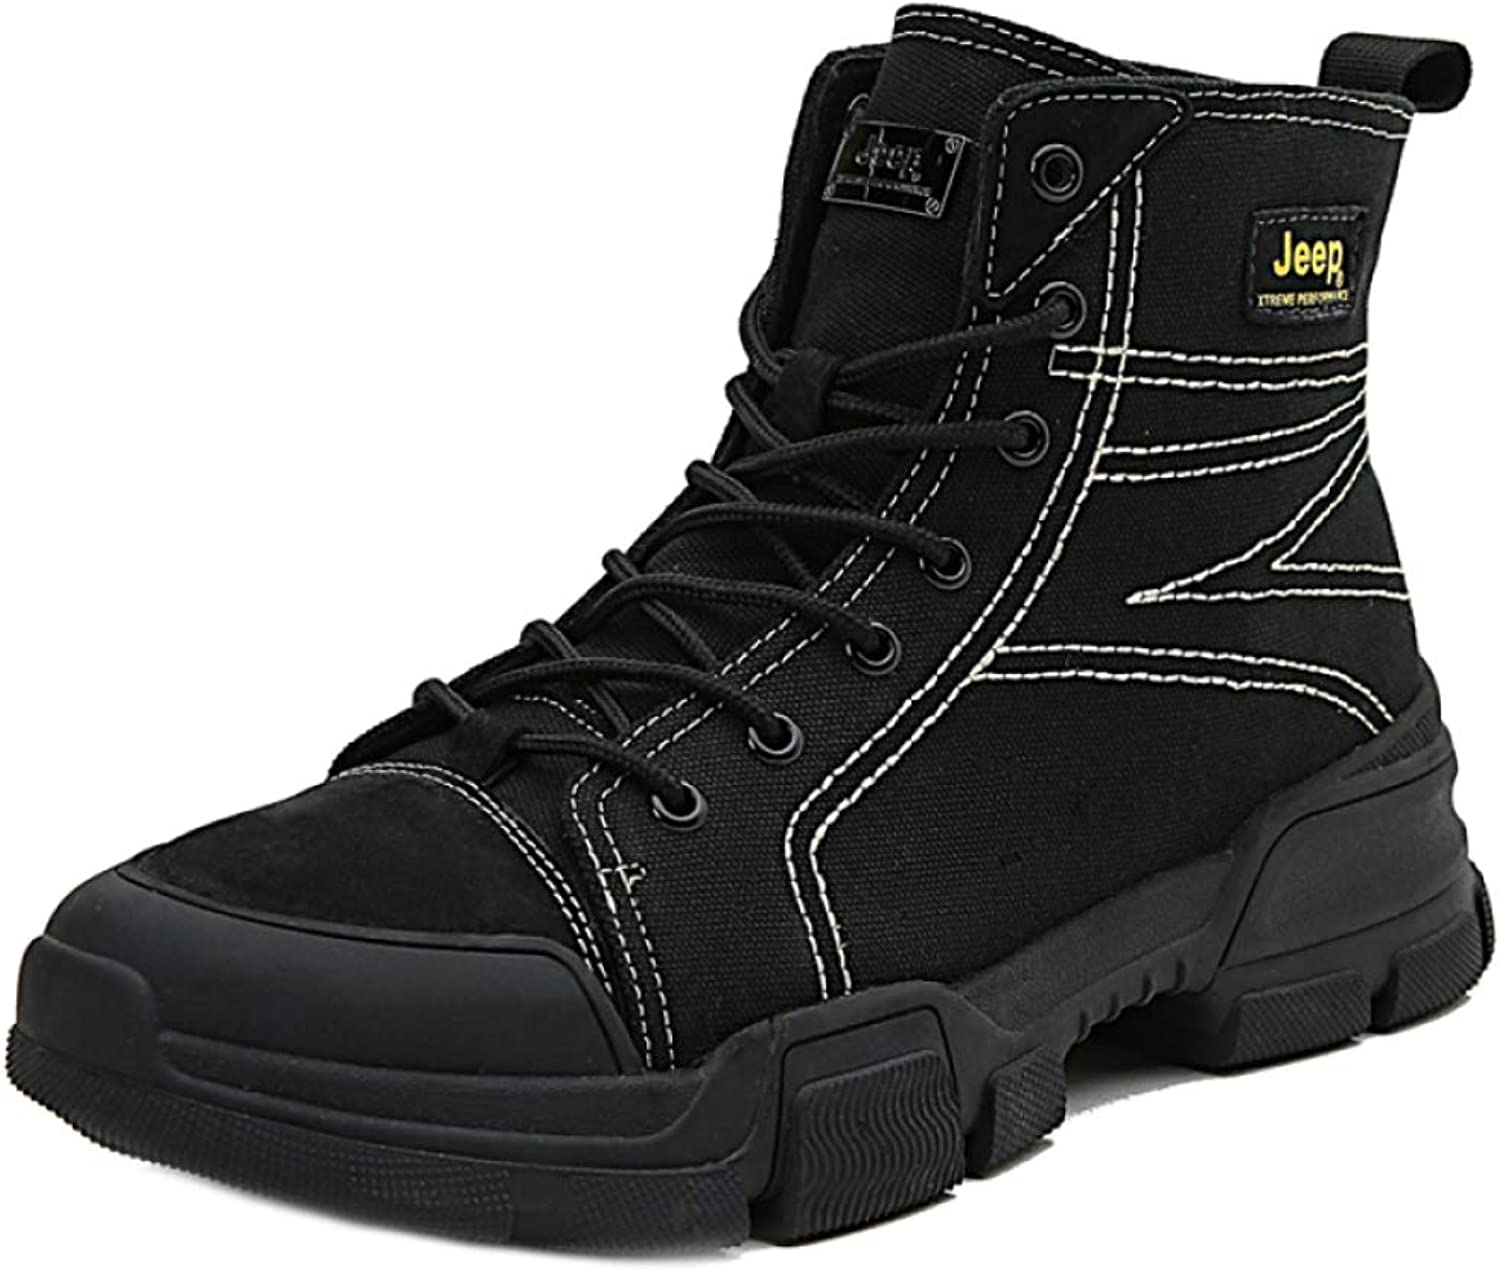 Martin Men's Snow Boots Winter Warm Ankle Boot Fully Lined Anti-Slip Leather Waterproof shoes Size:38-45